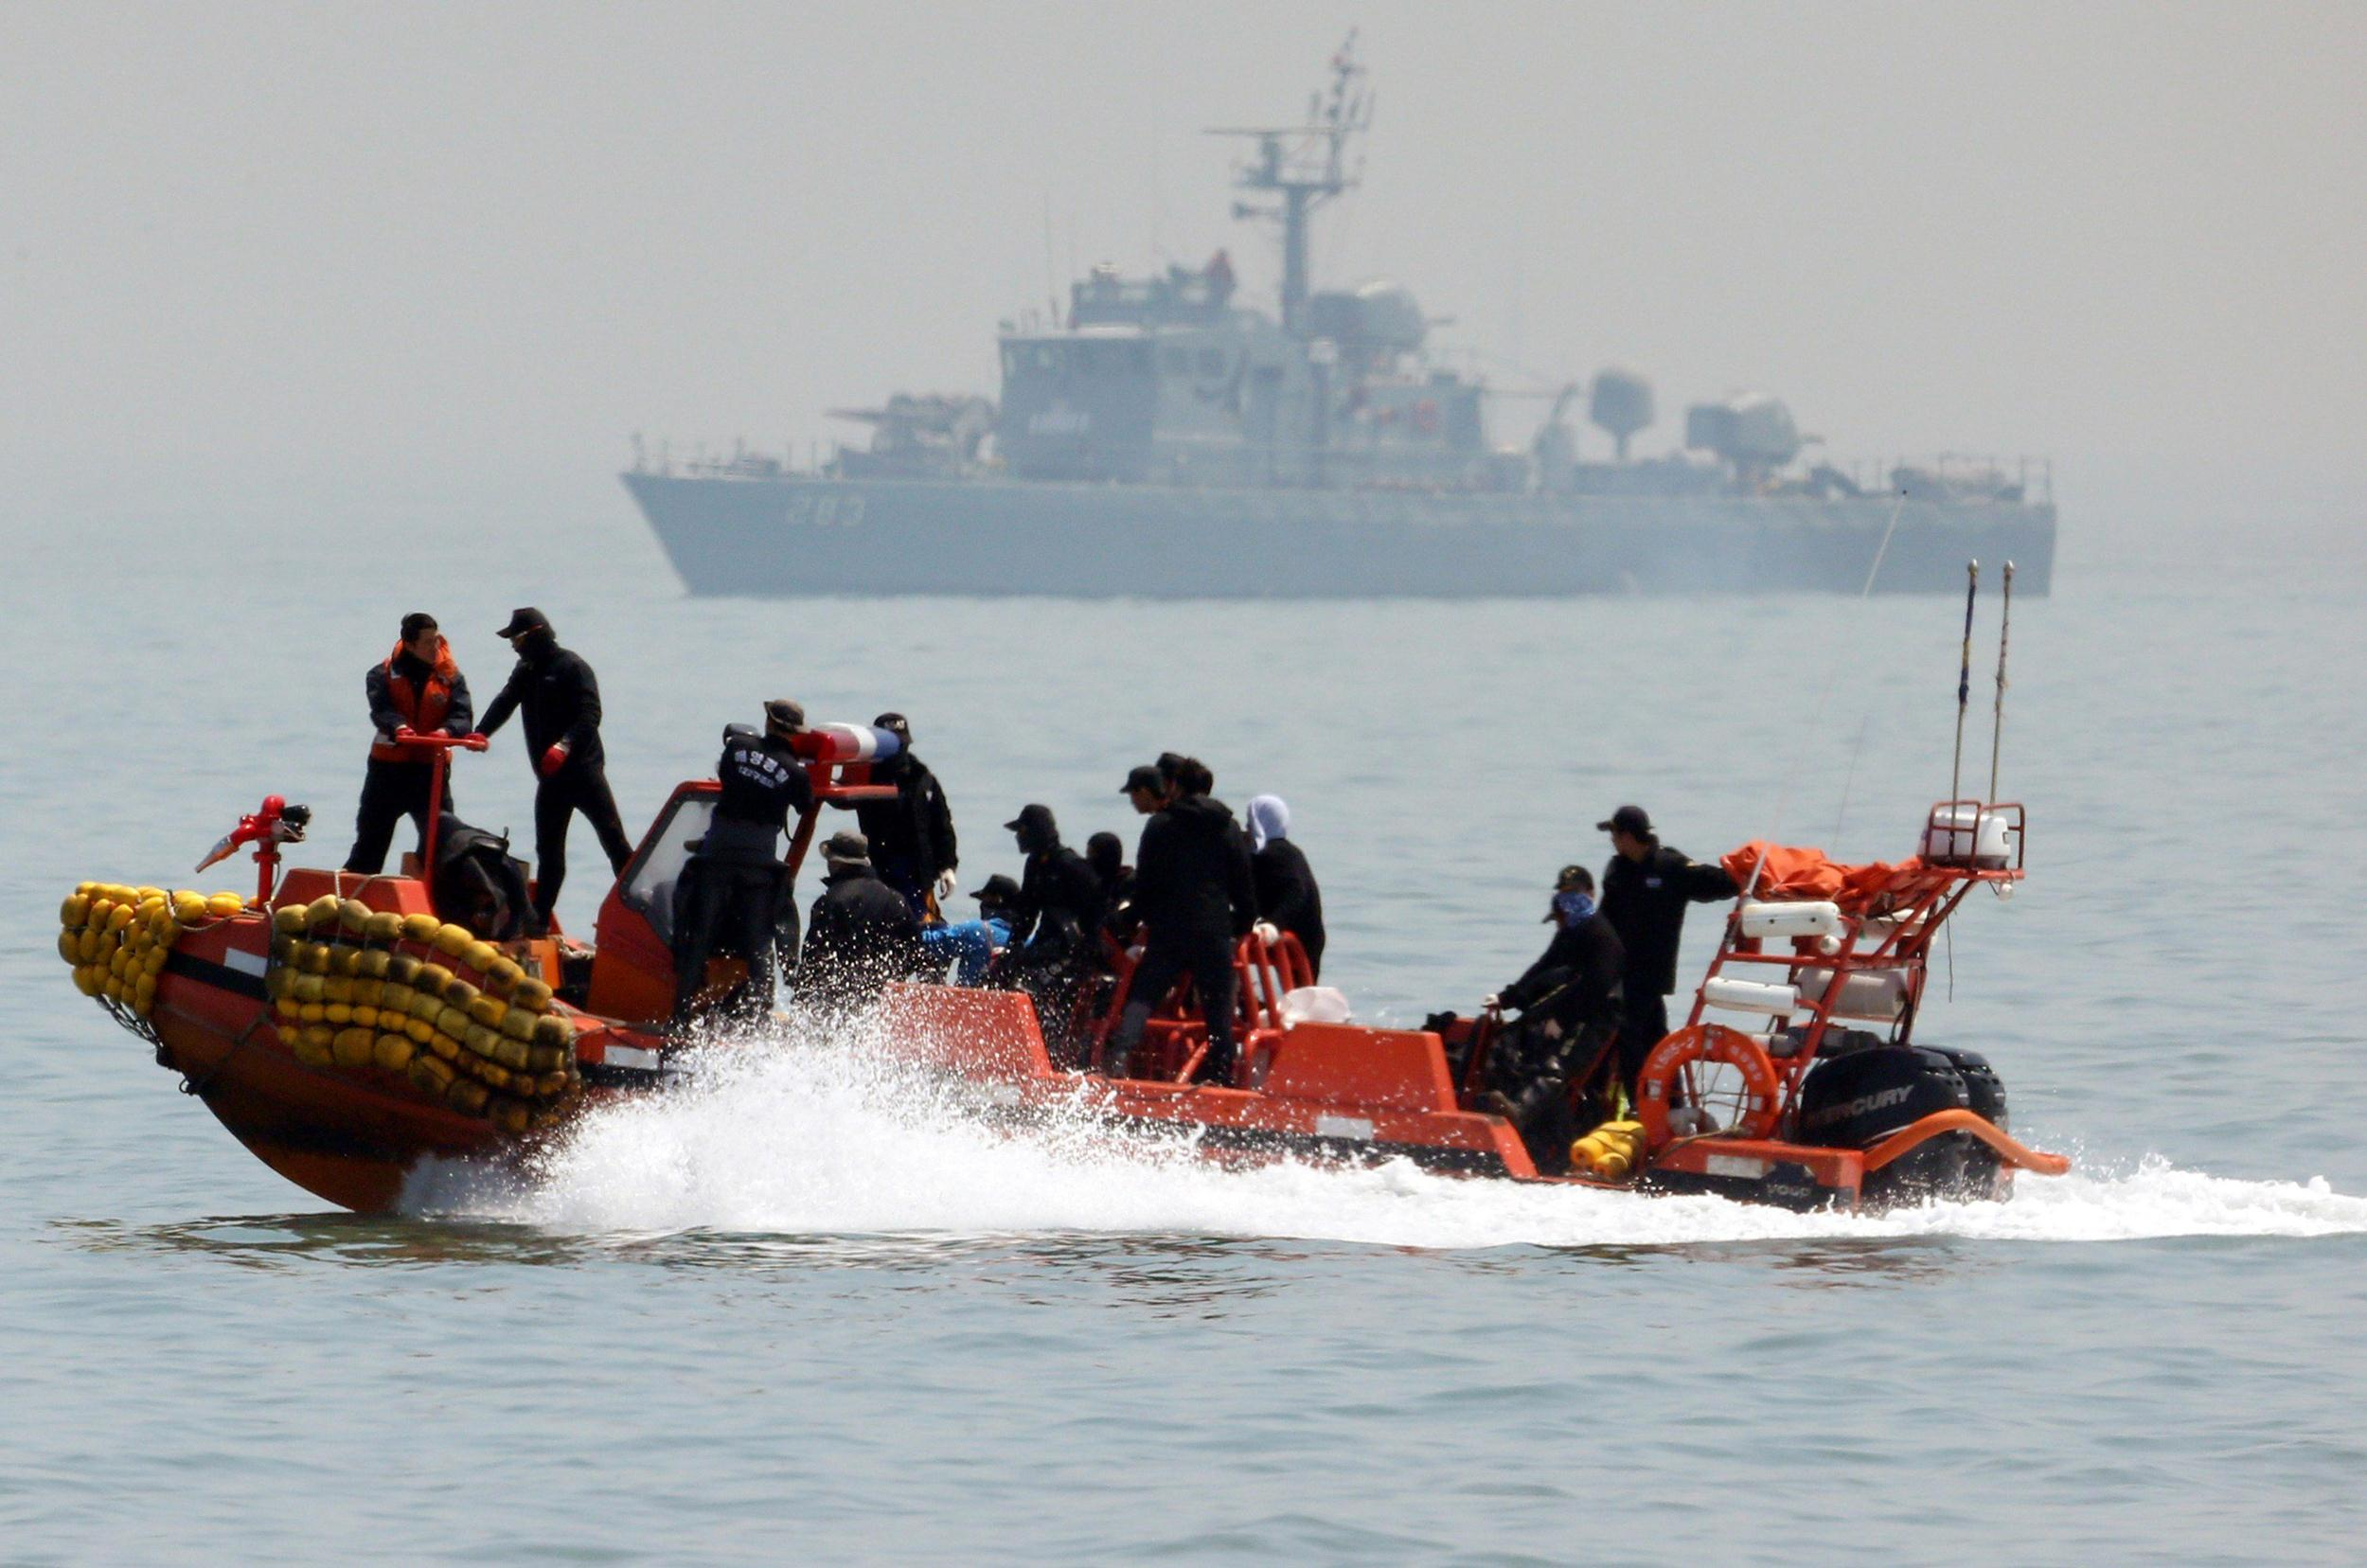 Image: South Korean rescue workers operate around the area where capsized passenger ship Sewol sank during an rescue operation in Jindo